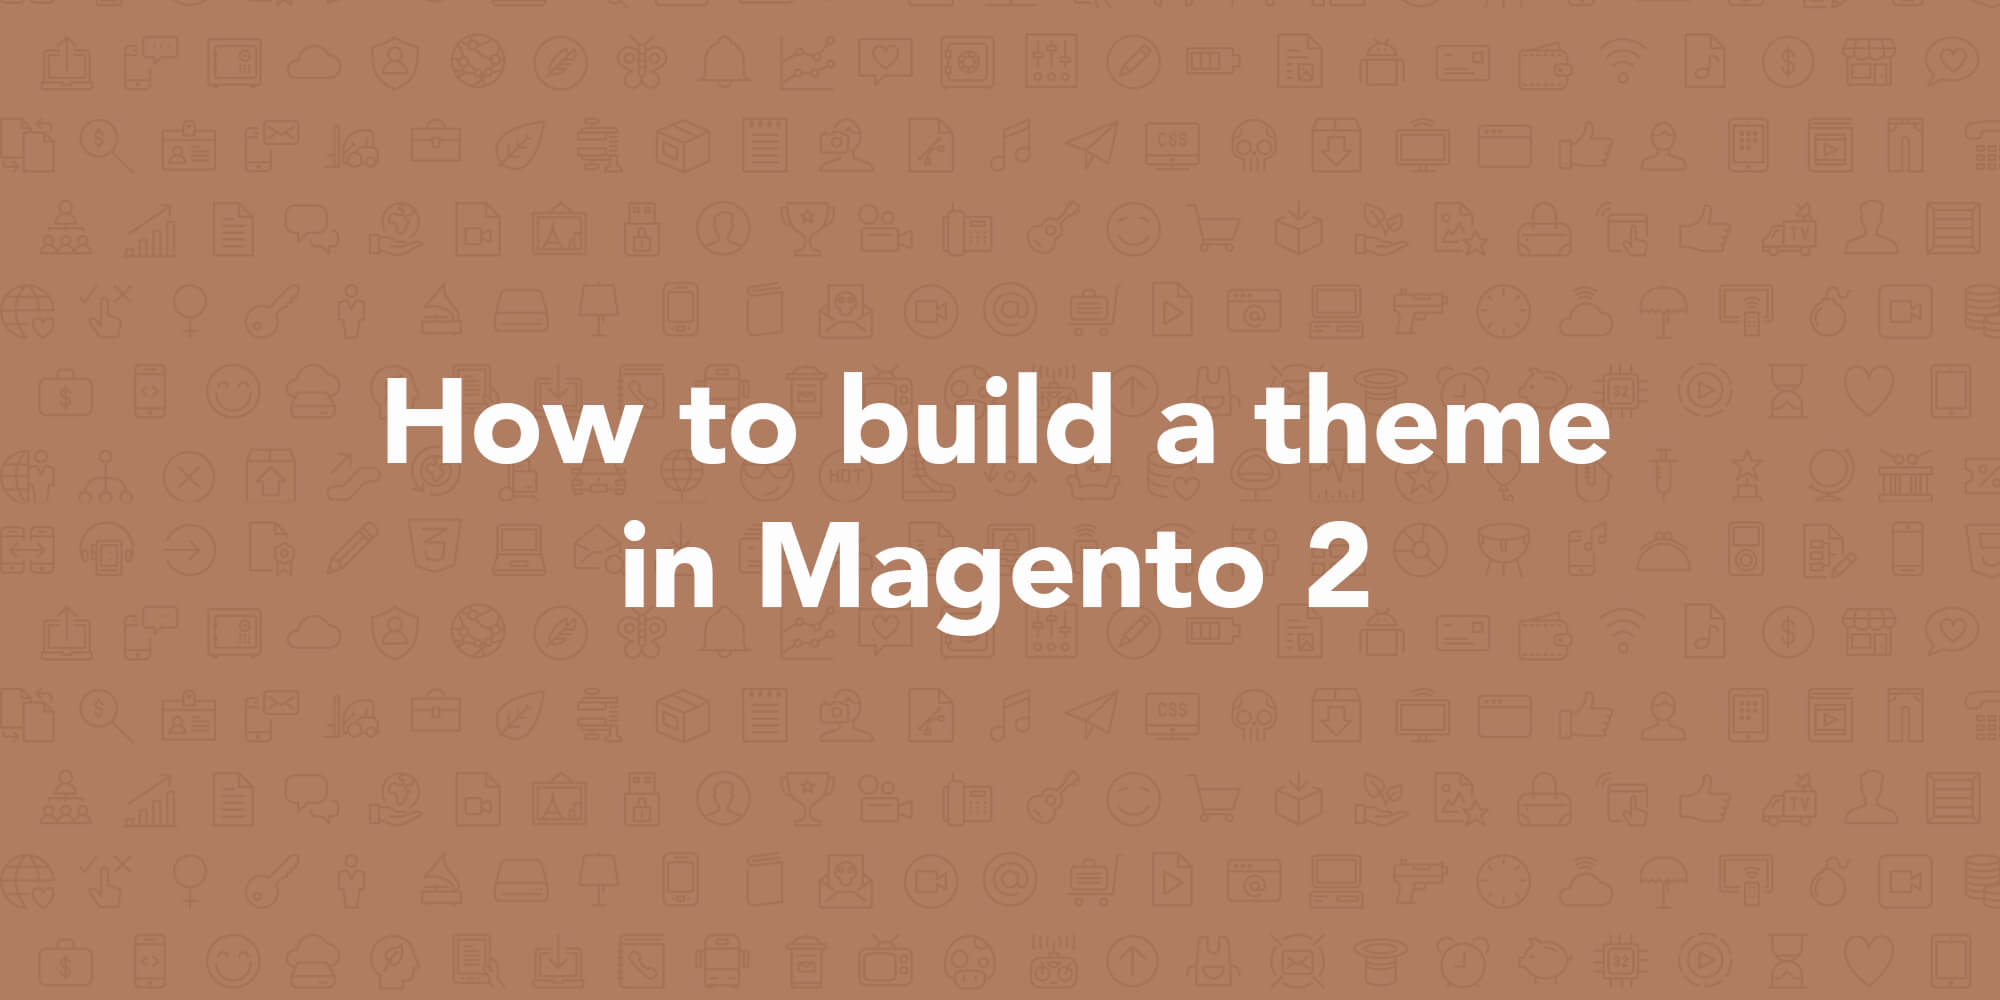 How to Build a Theme in Magento 2 - Classy Llama